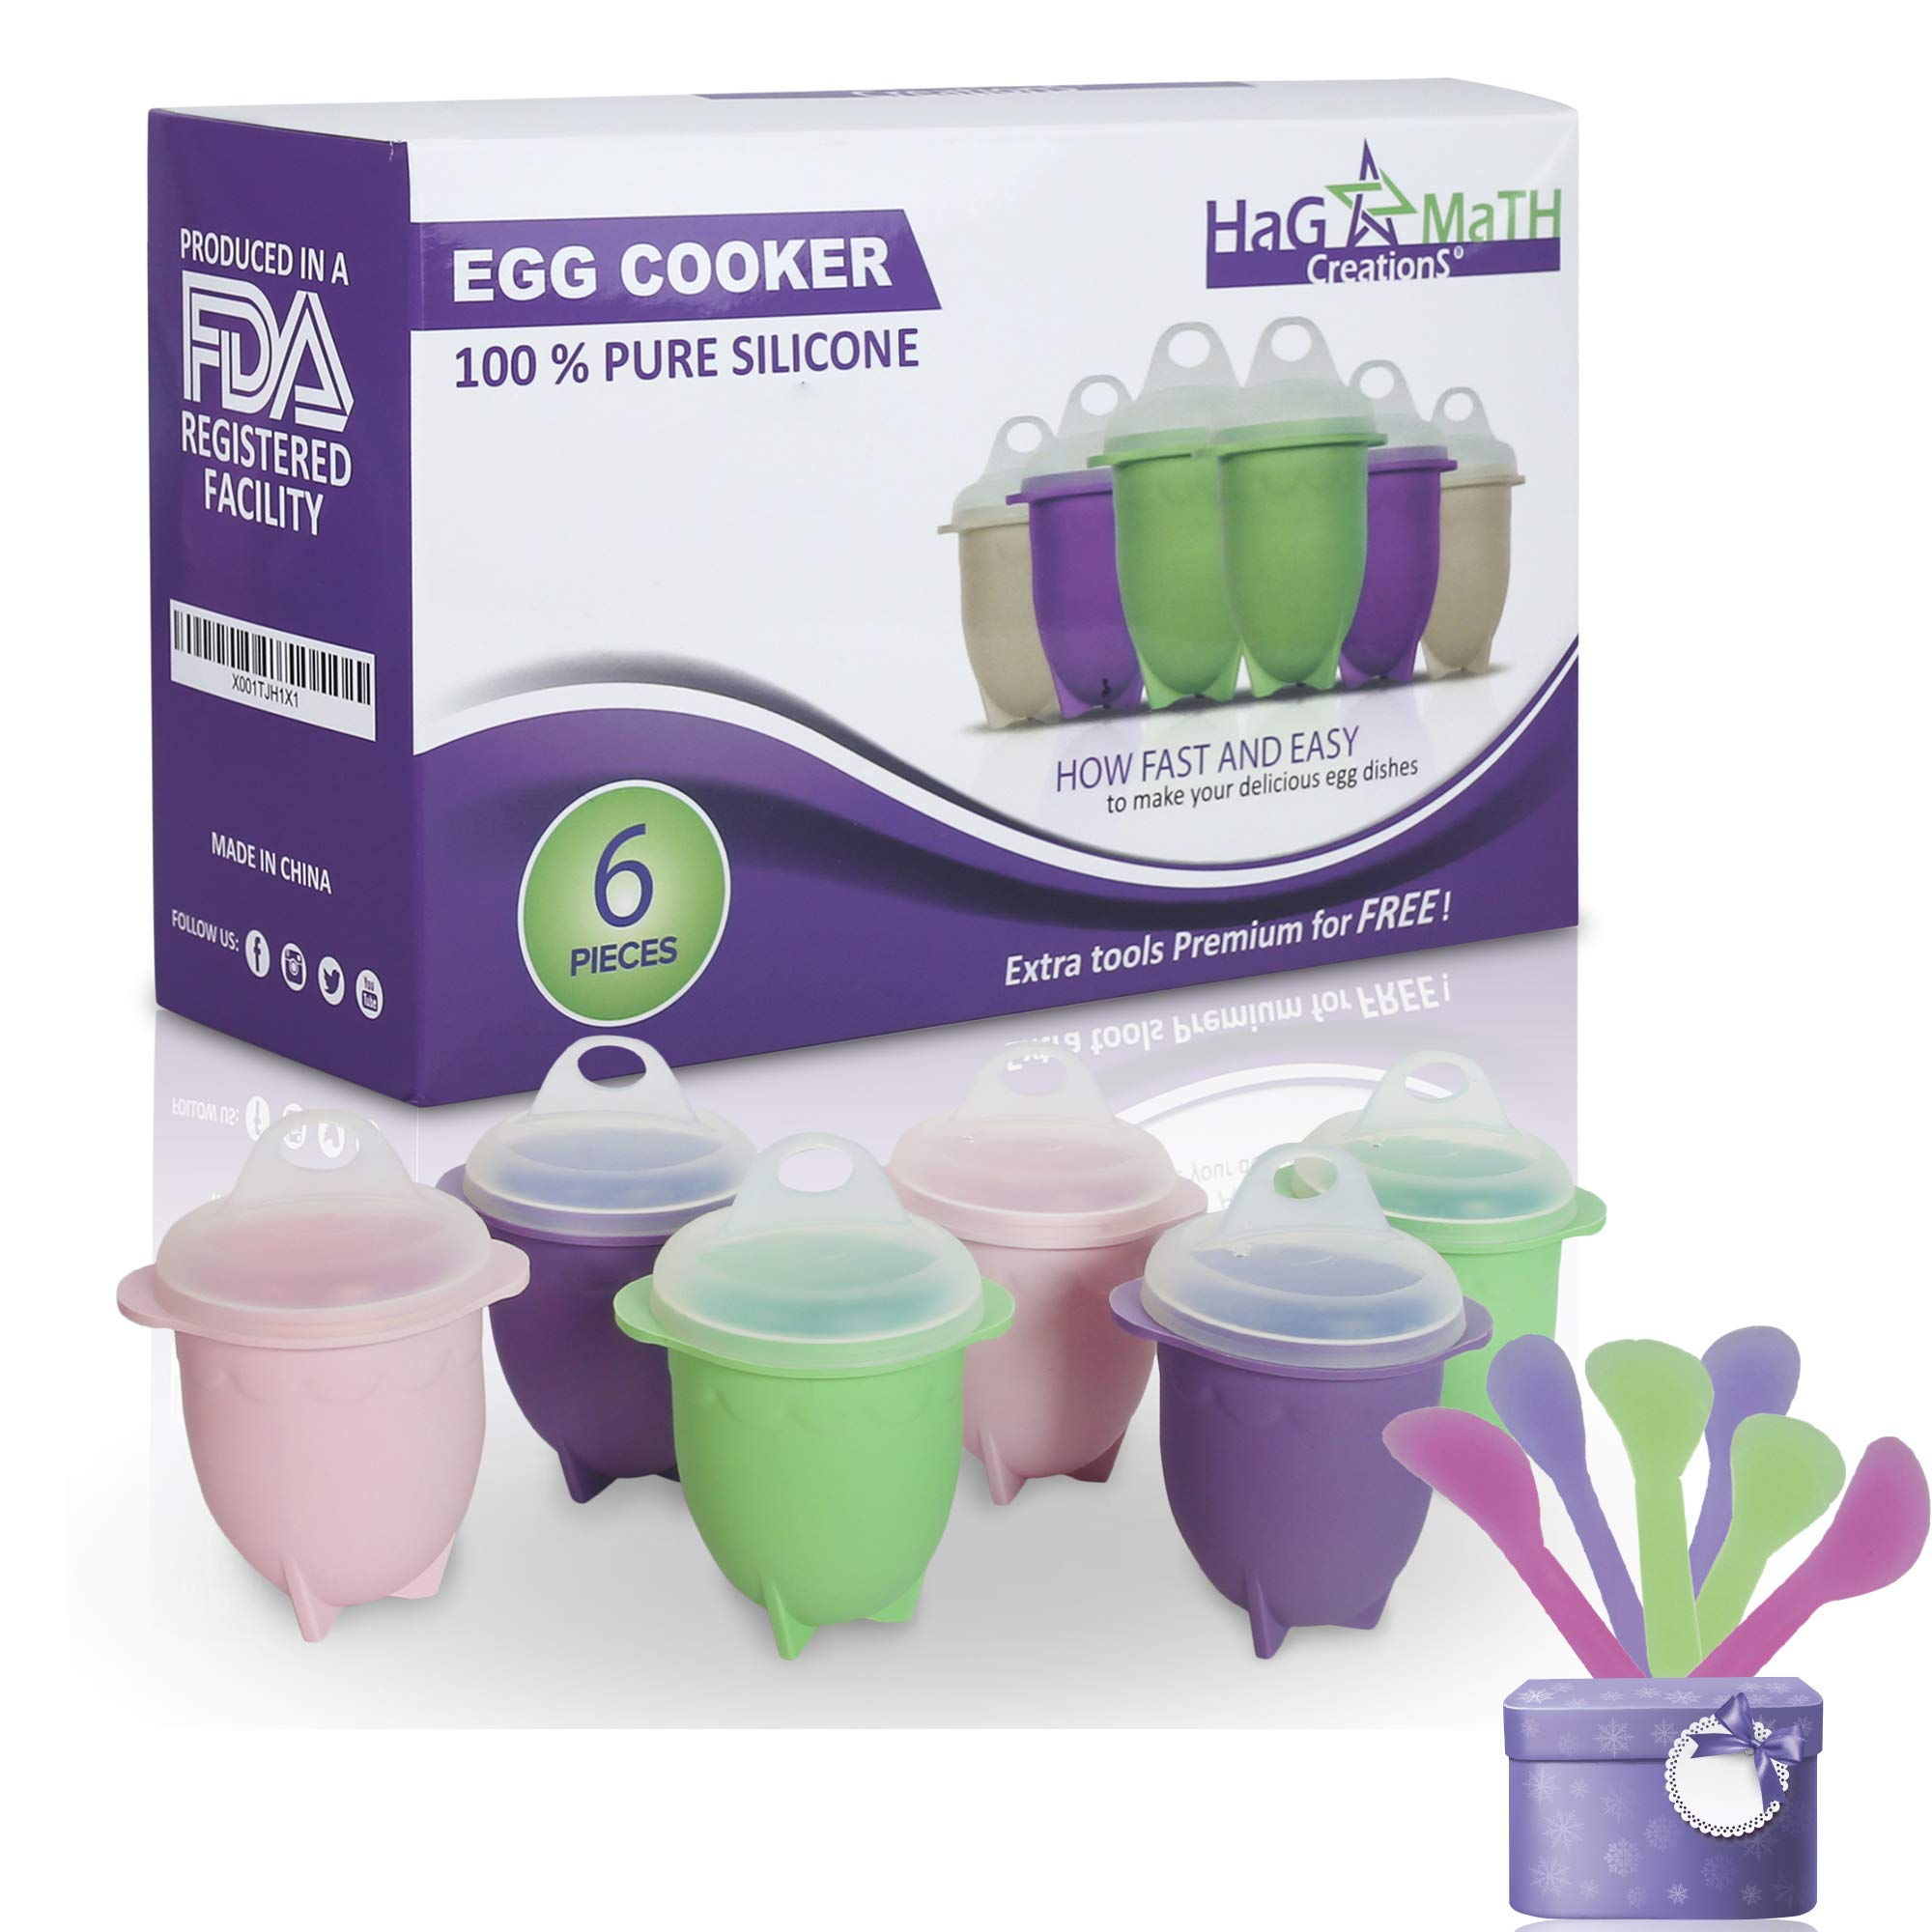 Hag & MaTH Egg Cooker for Boiling & Microwave, Hard Boiled Egg Maker Without the Shell, Set of 6 Non-Stick Silicone Egg Poacher Cups and Lids + Bonus Items by Hag & Math